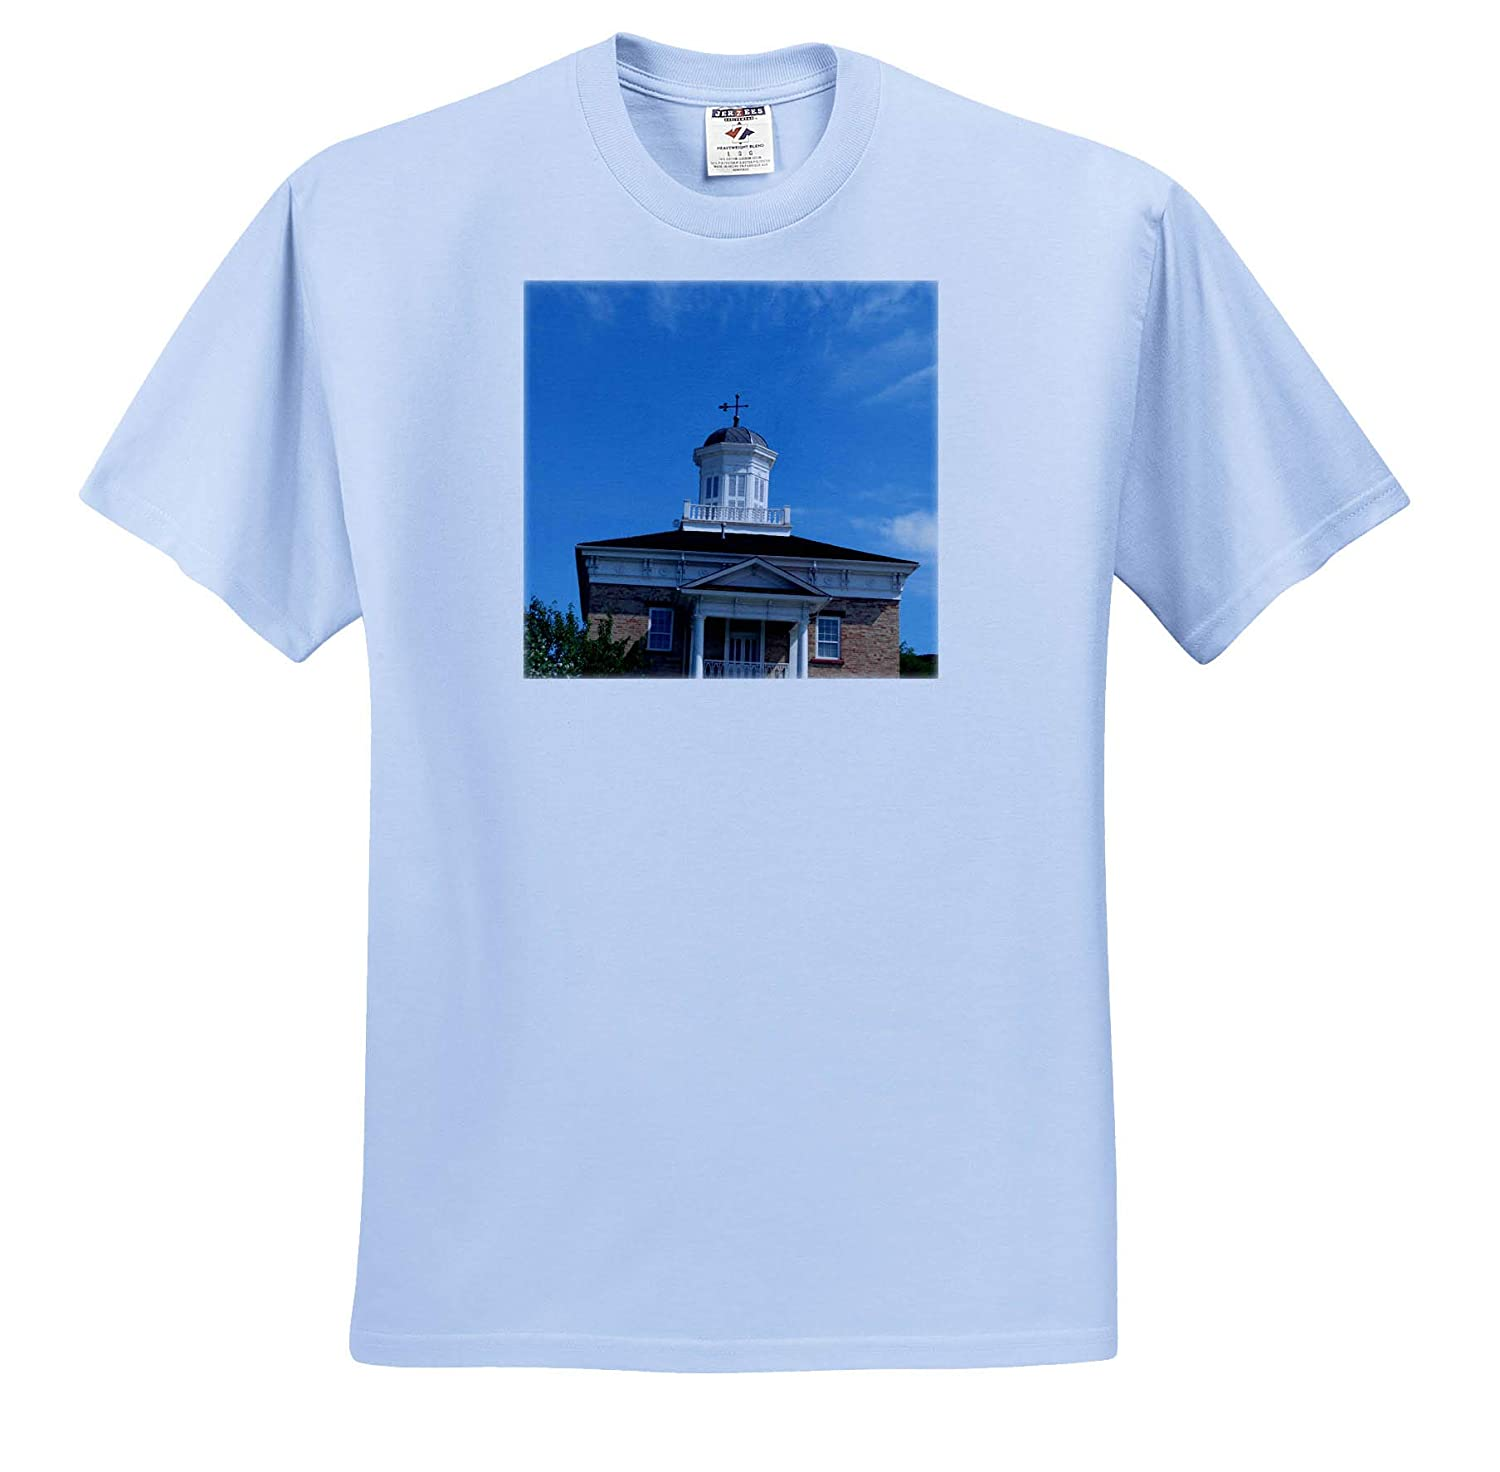 3dRose Jos Fauxtographee an Old Building in a Small Town in Utah with a Blue Sky T-Shirts Building Utah